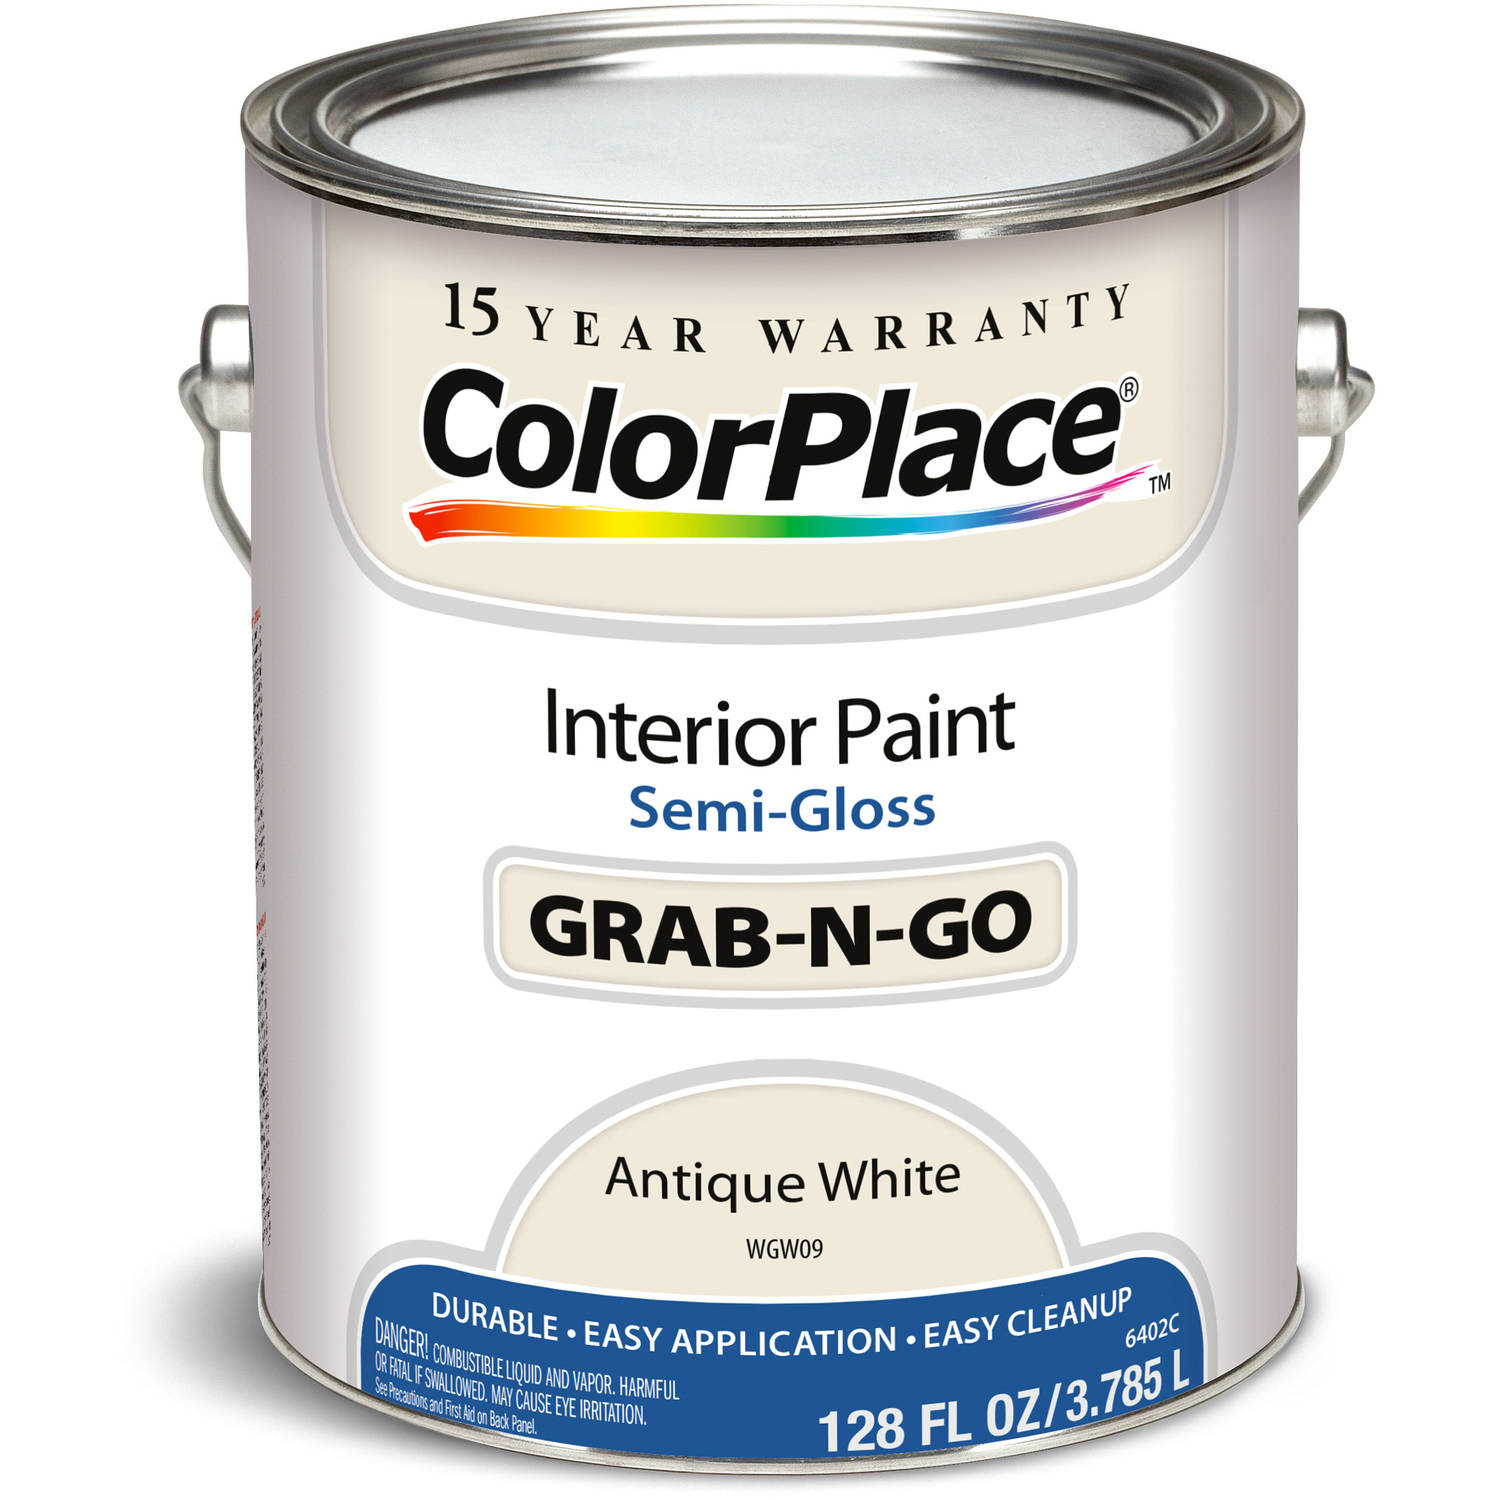 Colorplace Antique White Semi Gloss Interior Paint, 1 Gallon   Walmart.com